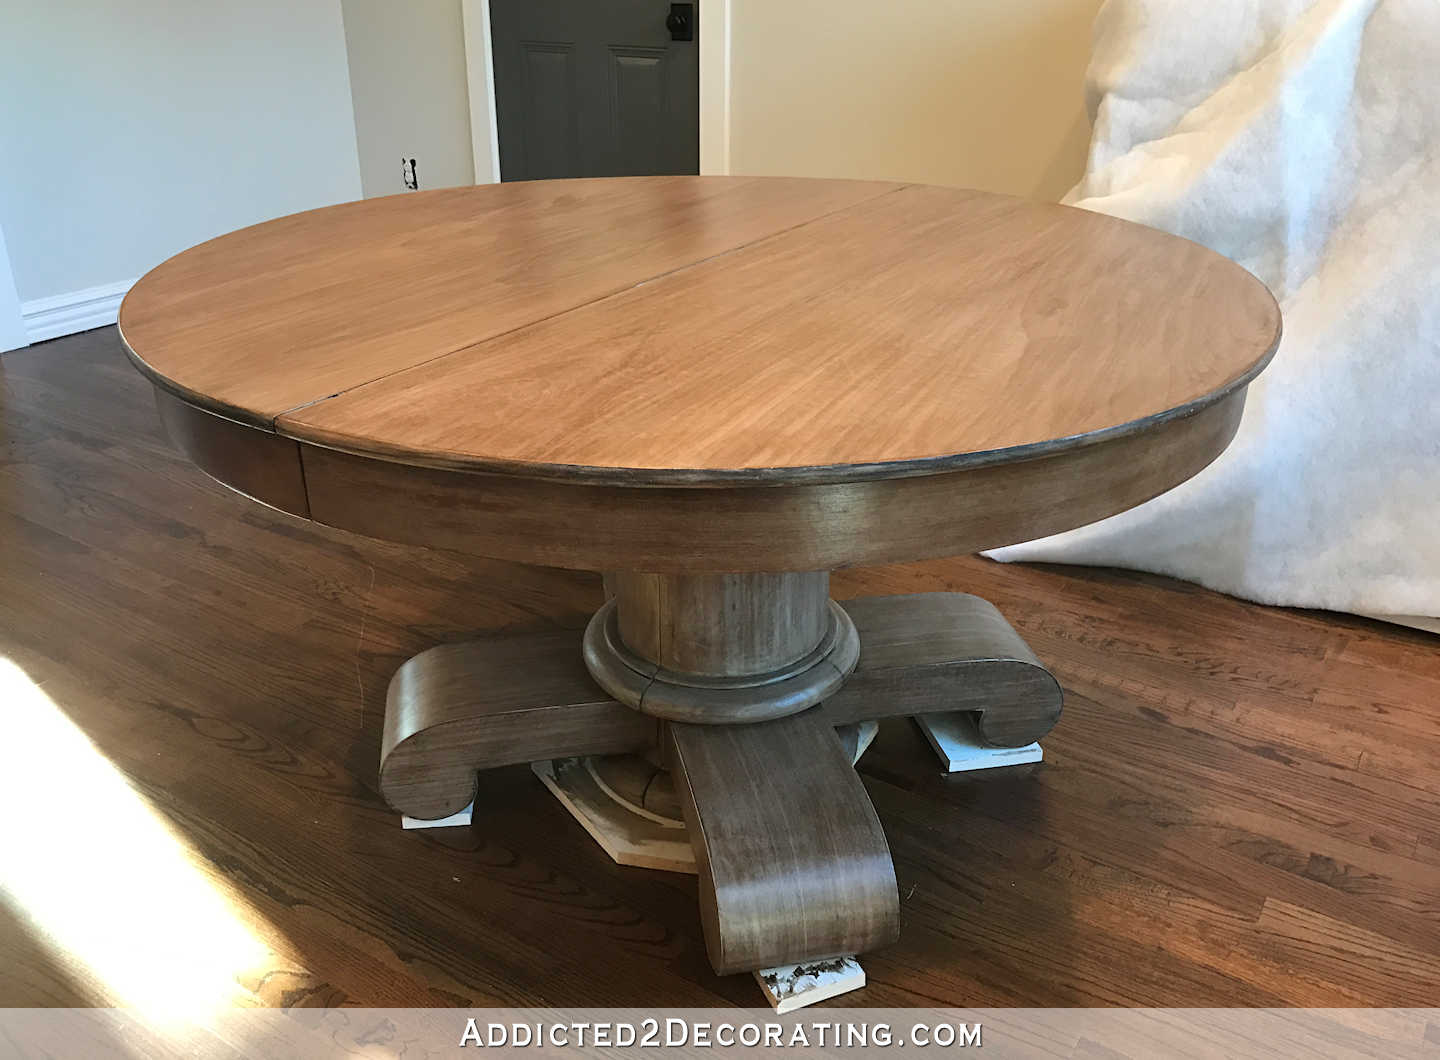 breakfast room dining table makeover - finish toned down with stain